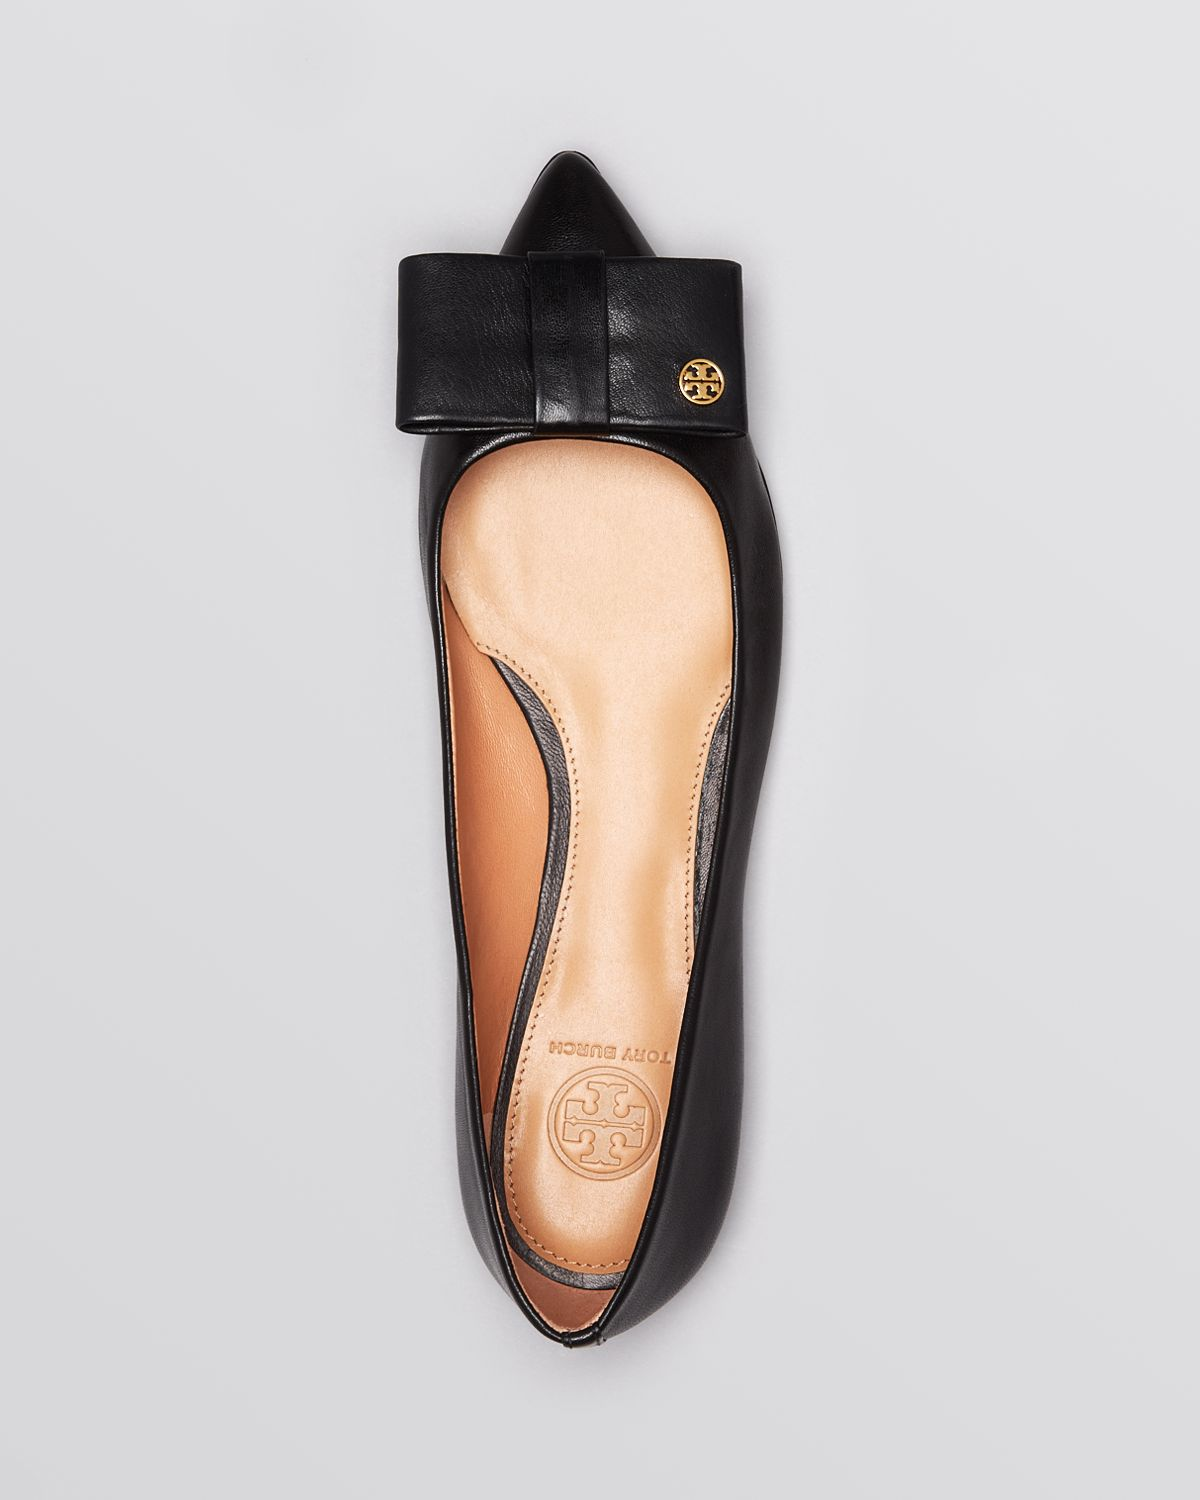 23677422cc4 Lyst - Tory Burch Pointed Toe Flats Aimee in Black